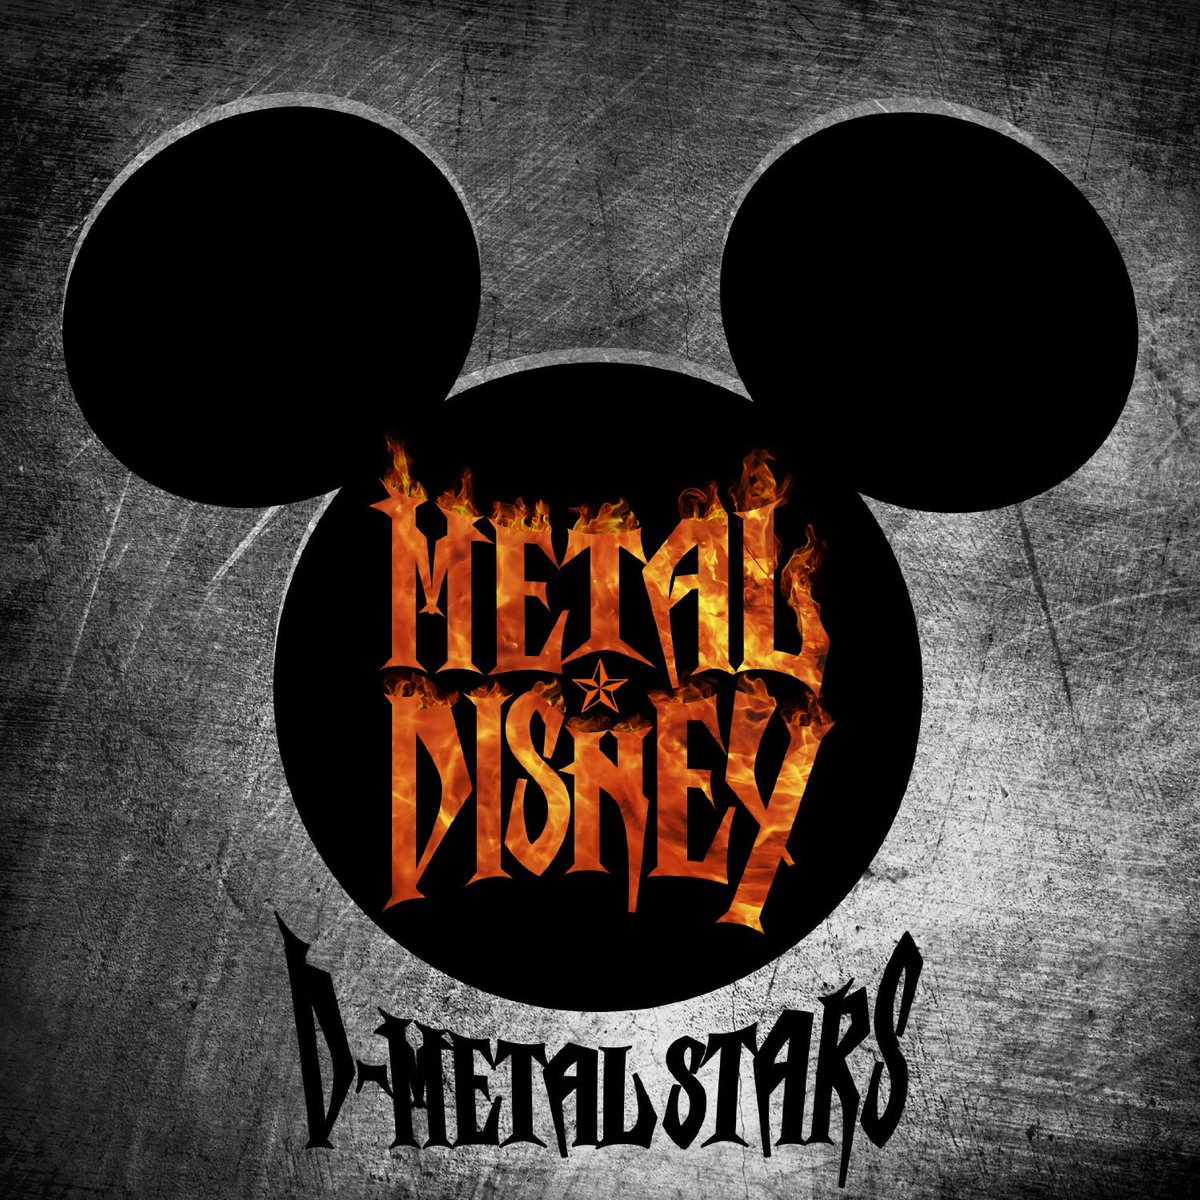 via twitter @gawrsh - Metal Disney